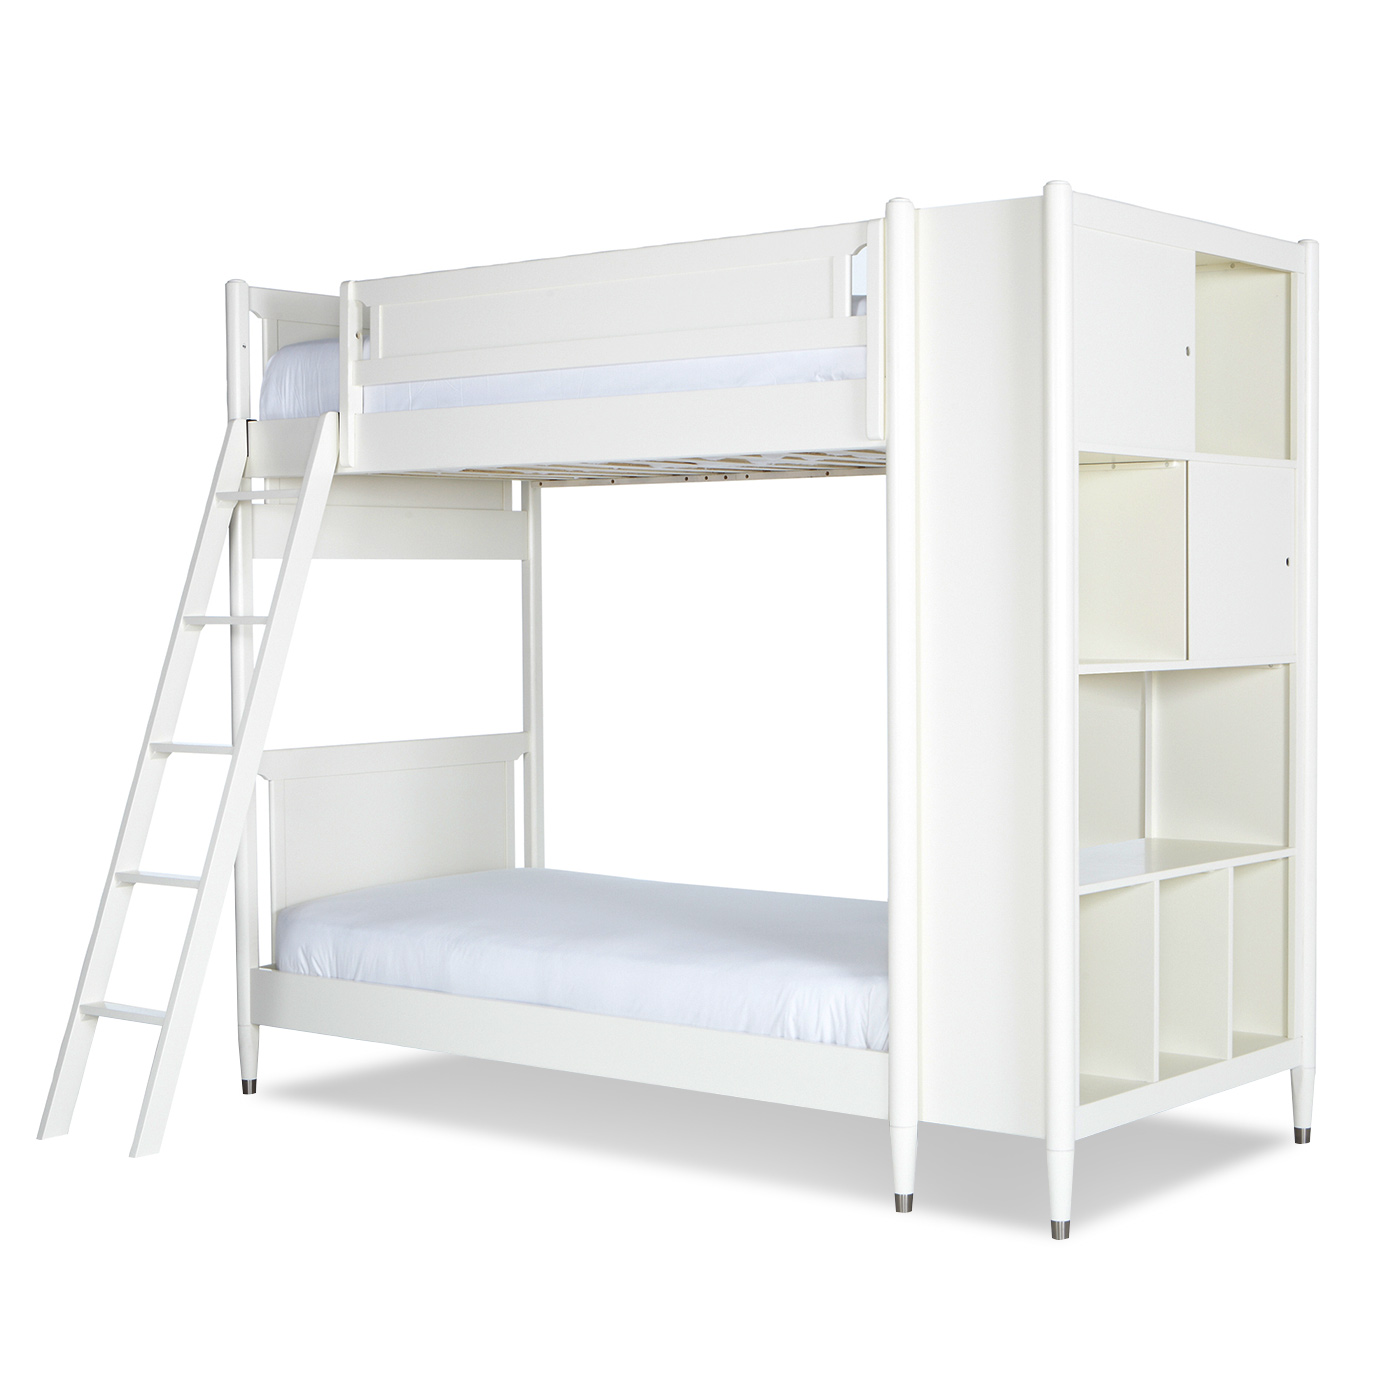 Dwellstudio Mid Century Library Bunk Bed In White Free Shipping